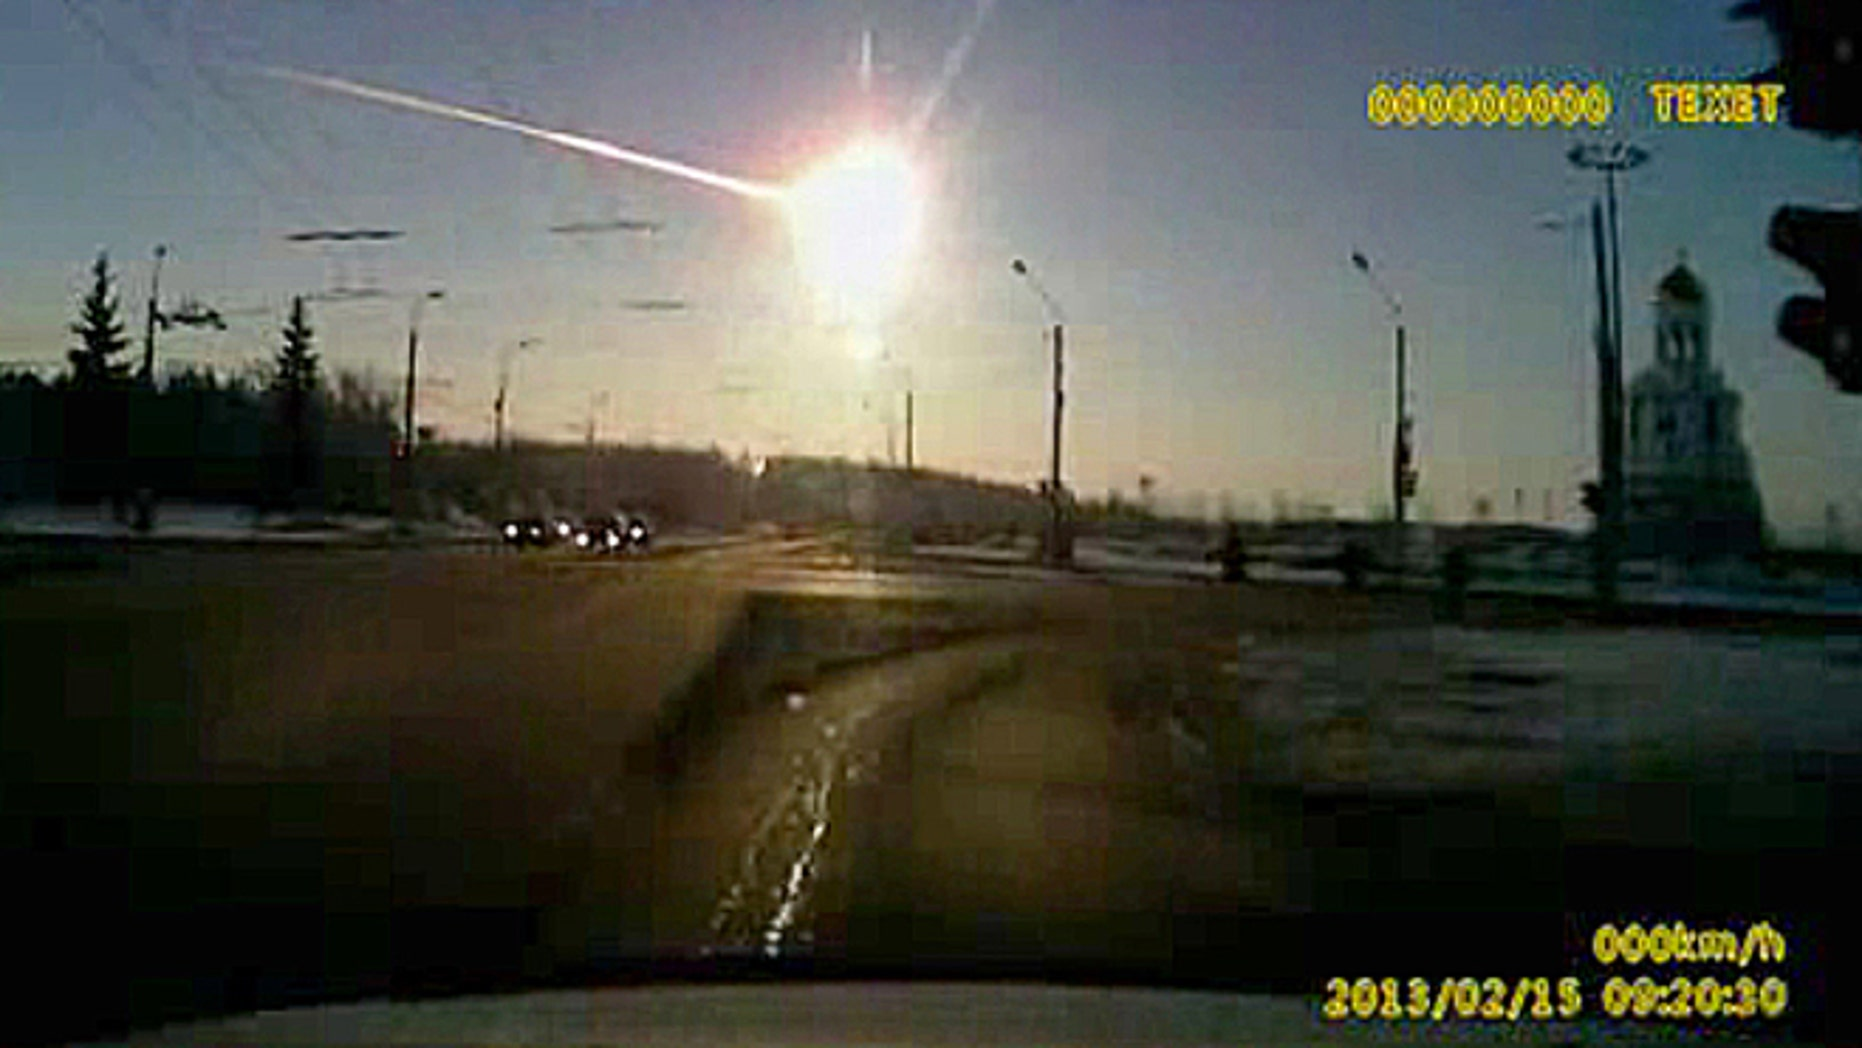 Feb 15, 2013: In this frame grab made from dashboard camera vide shows a meteor streaking through the sky over Chelyabinsk, about 930 miles east of Moscow.